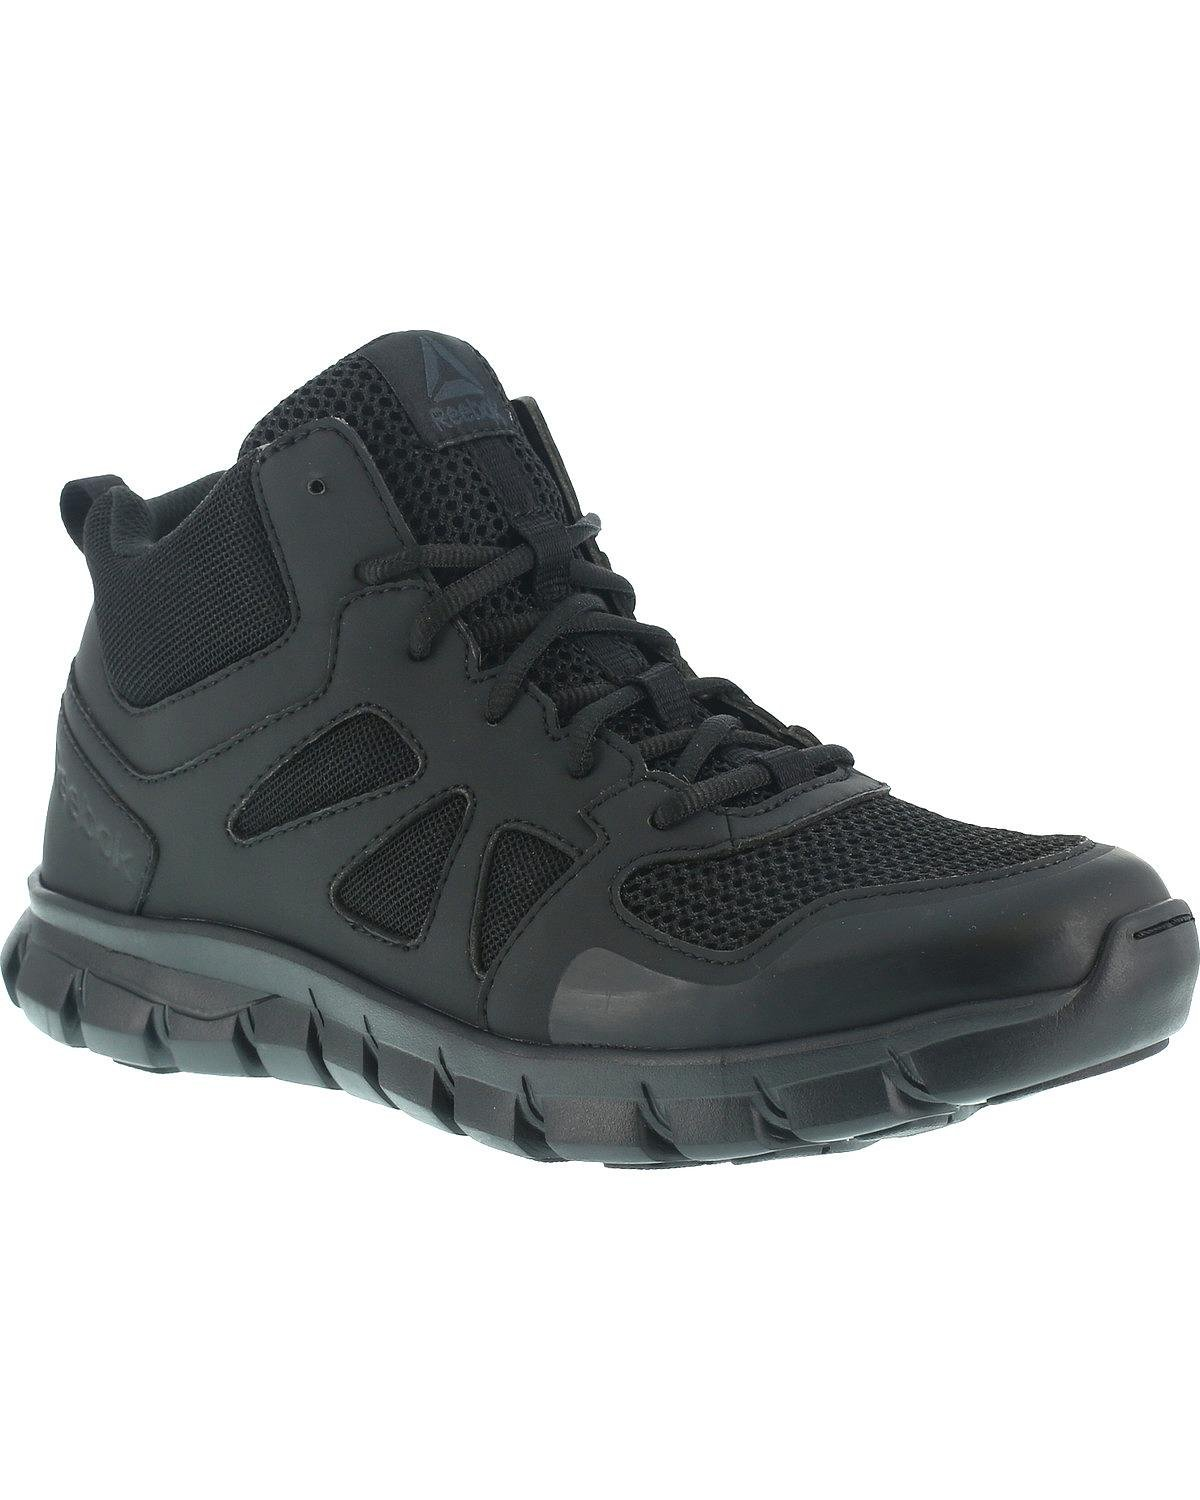 Reebok Women's Sublite Cushion RB805 Military and Tactical Boot, Black, 7.5 W US